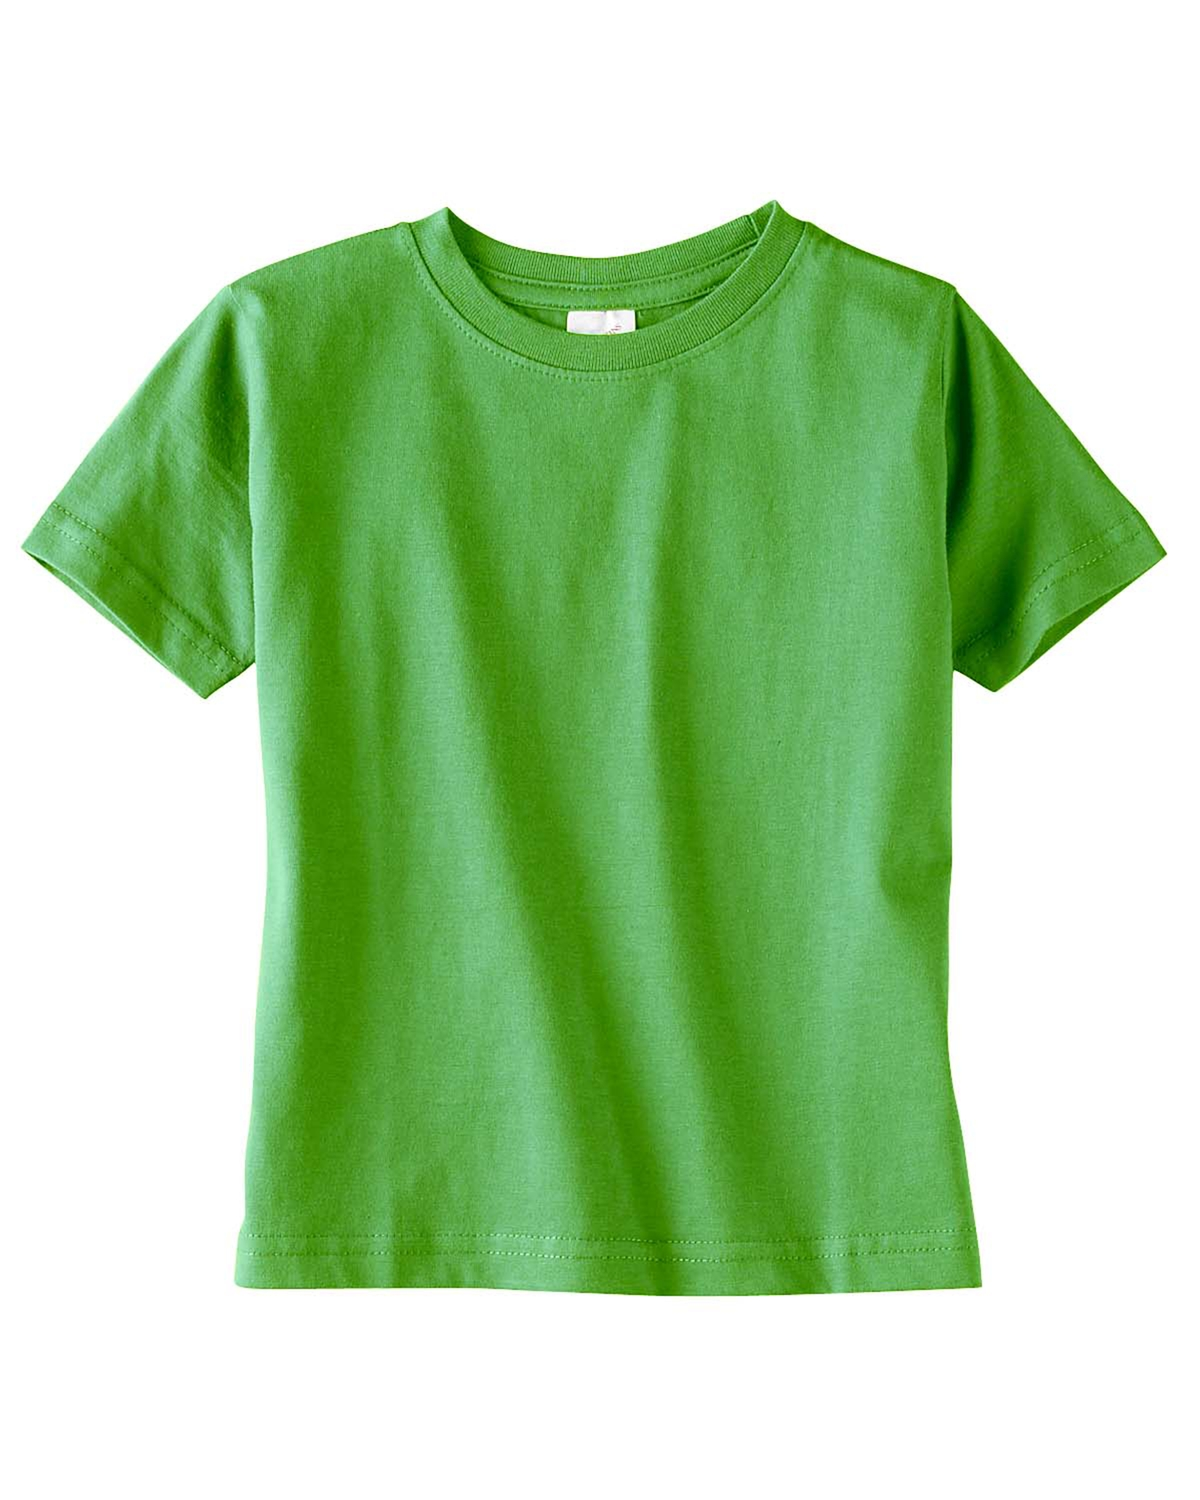 Rabbit Skins-Toddler 4-5 oz-Fine Jersey T-Shirt-3321